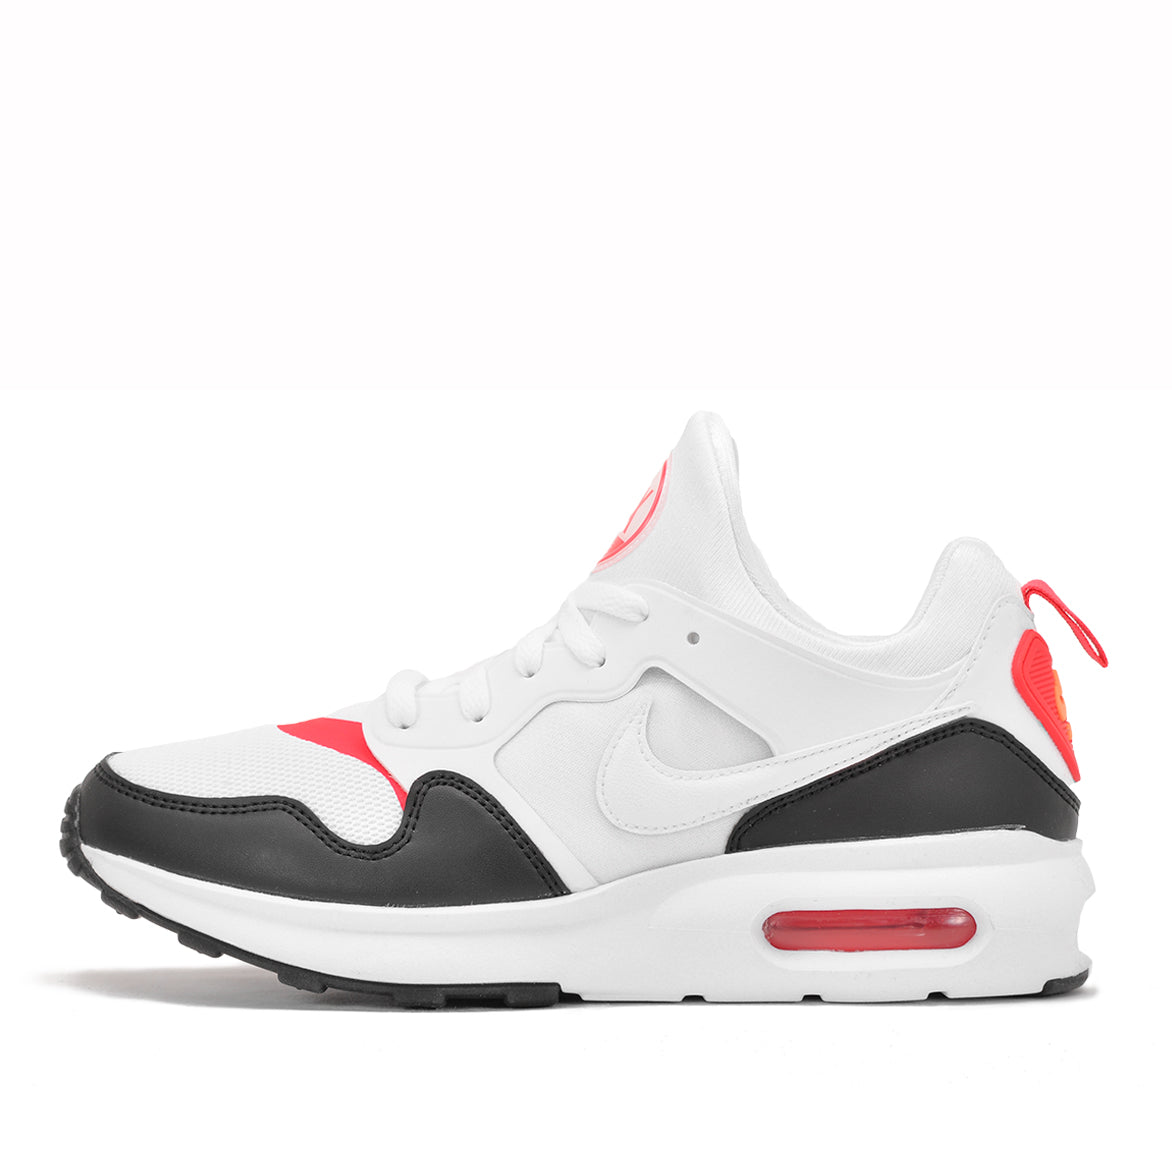 new product 04336 686a2 AIR MAX PRIME - WHITE   SIREN RED   City Blue